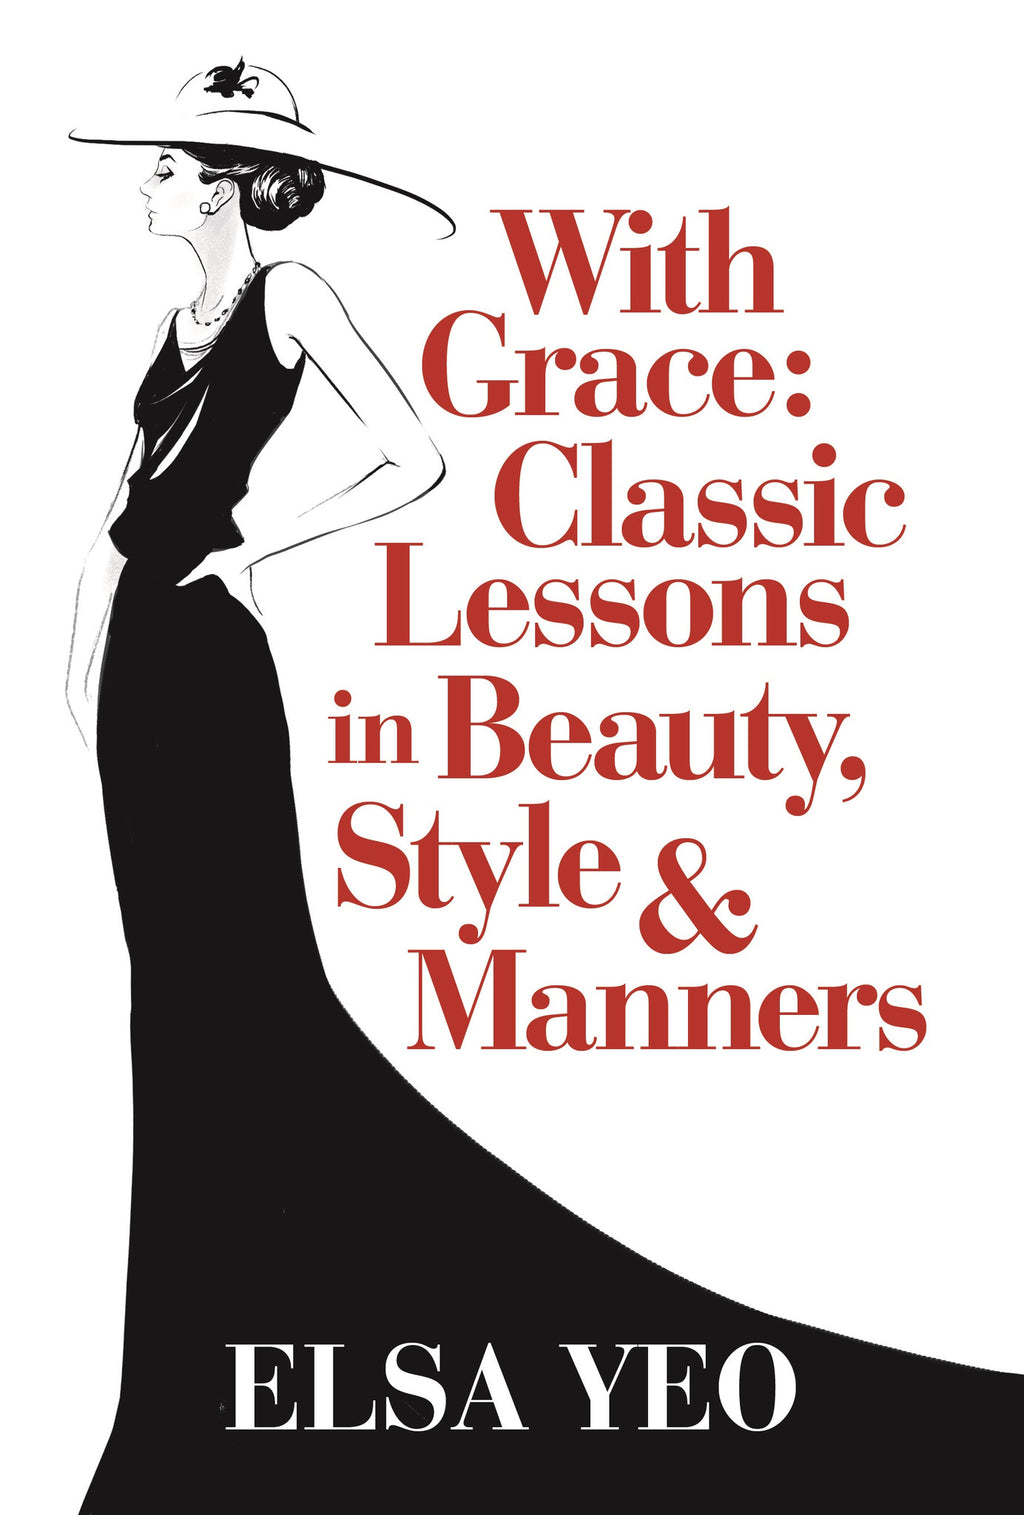 With Grace: Classic Lessons on Beauty, Style & Manners